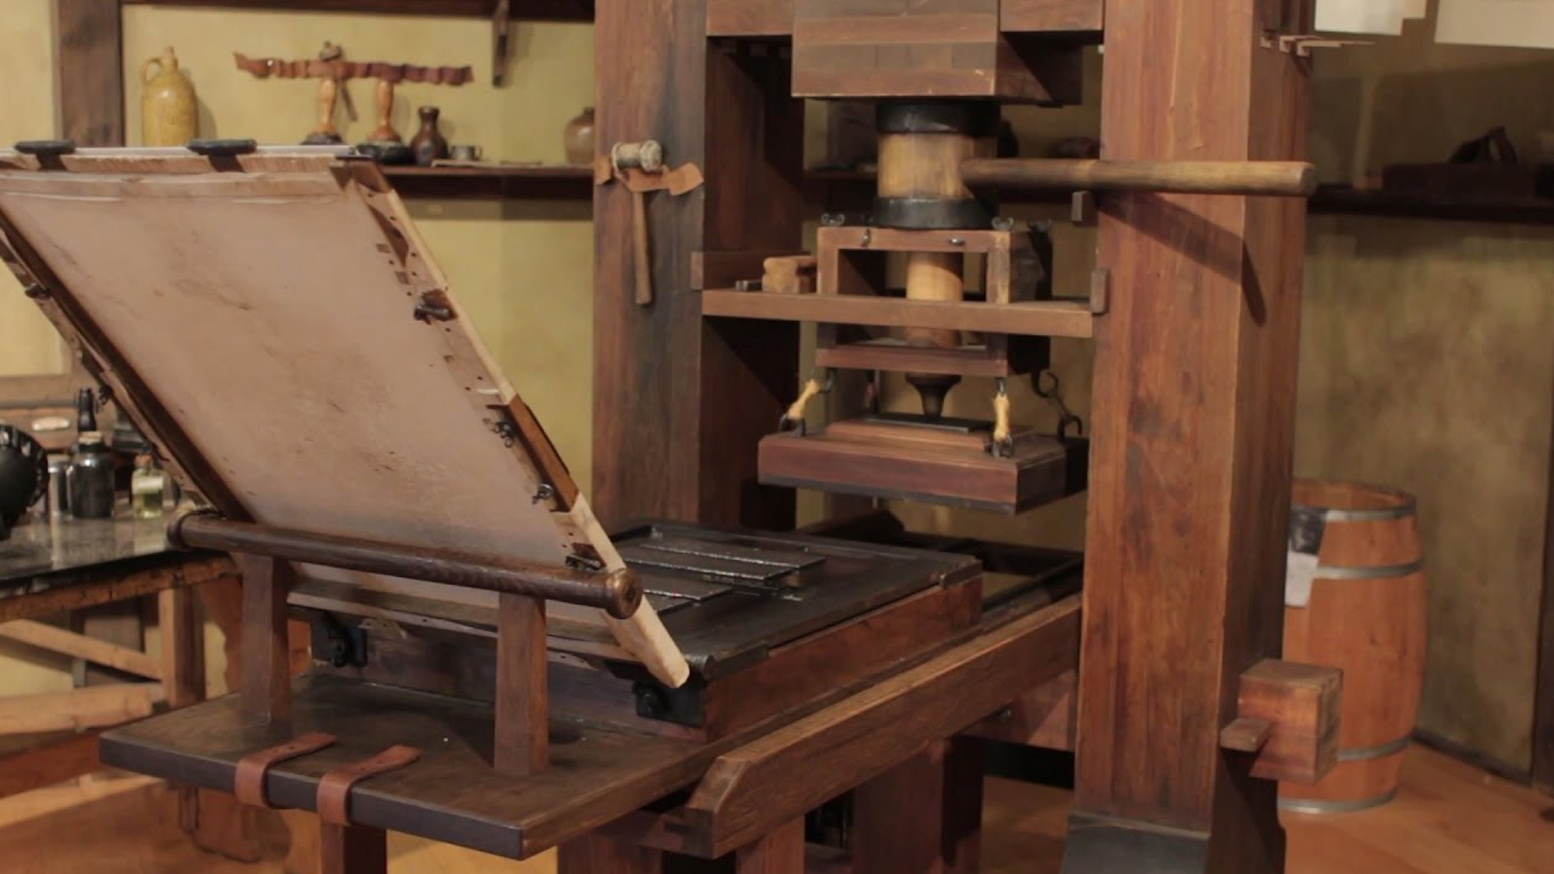 Pictures of the printing press Johann Gutenberg and the Amazing Printing Press